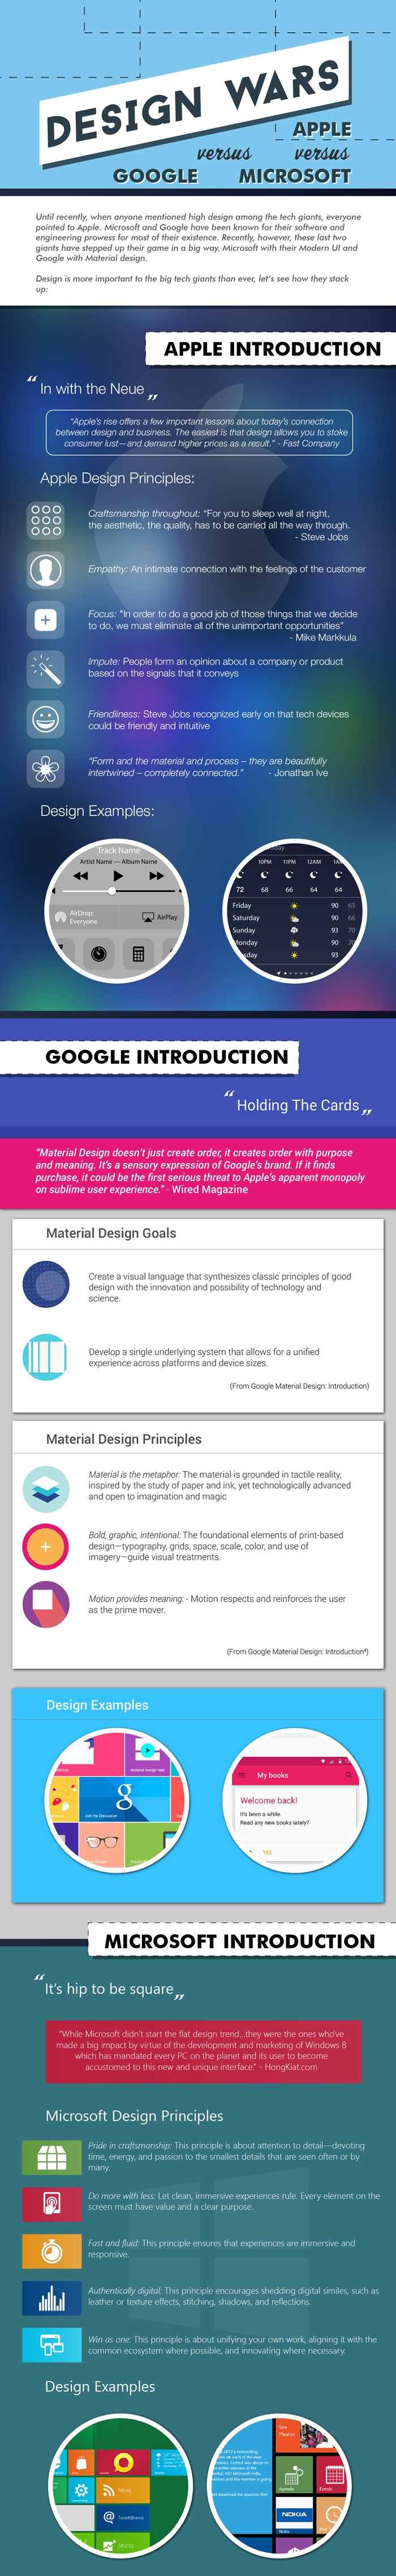 design-wars-infographic-coastal-creative3-001